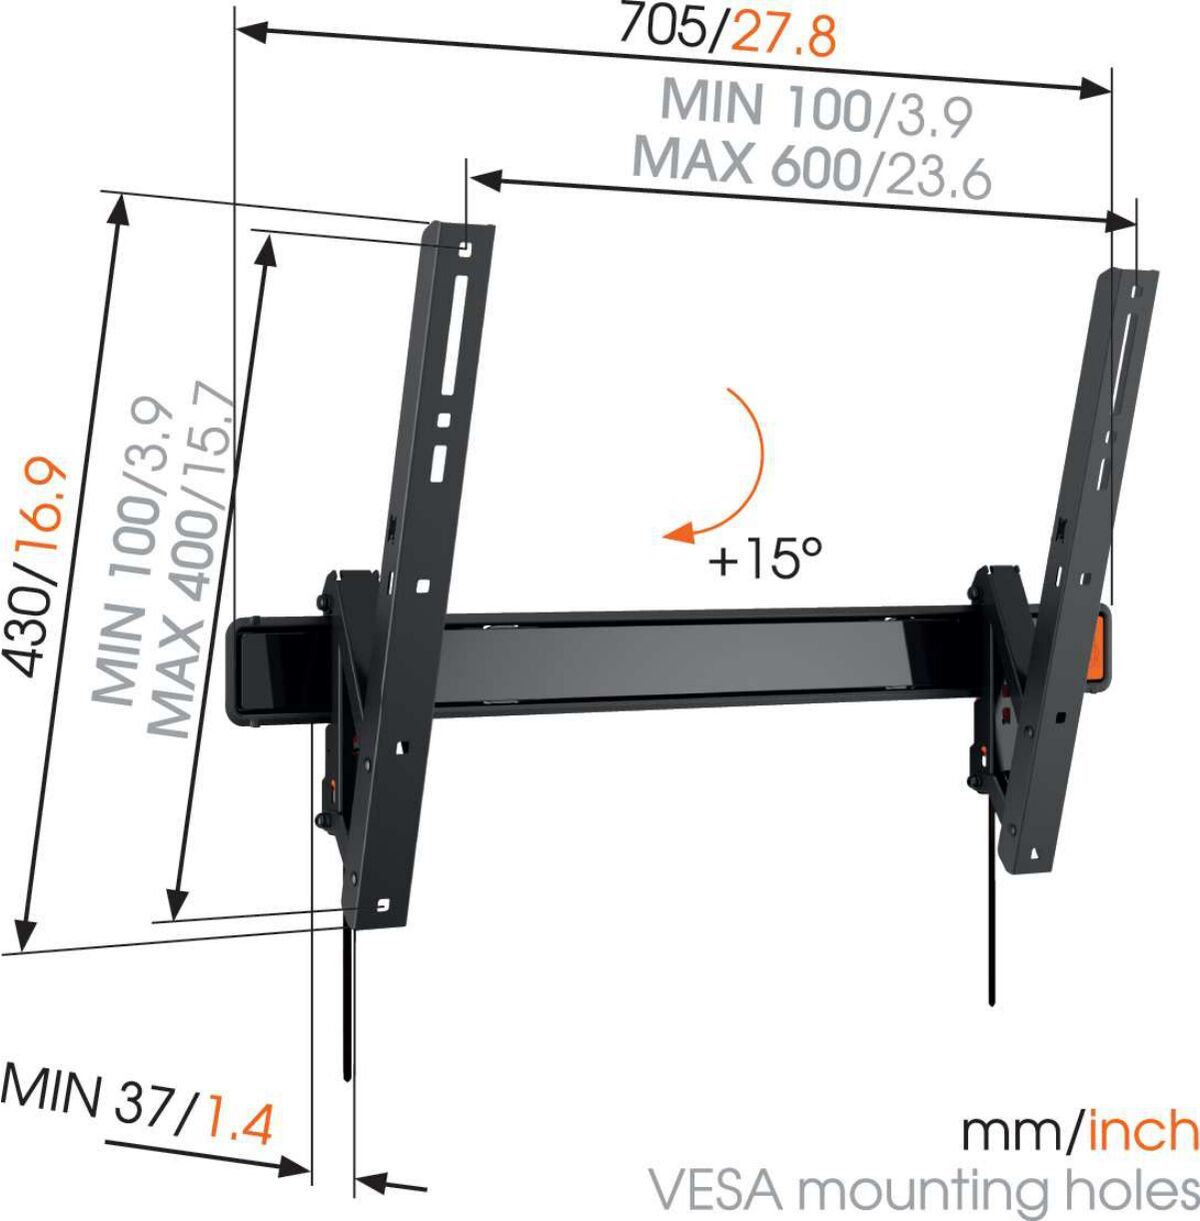 Vogel's WALL 3315 Tilting TV Wall Mount - Suitable for 40 up to 65 inch TVs up to 40 kg - Tilt up to 15° - Dimensions